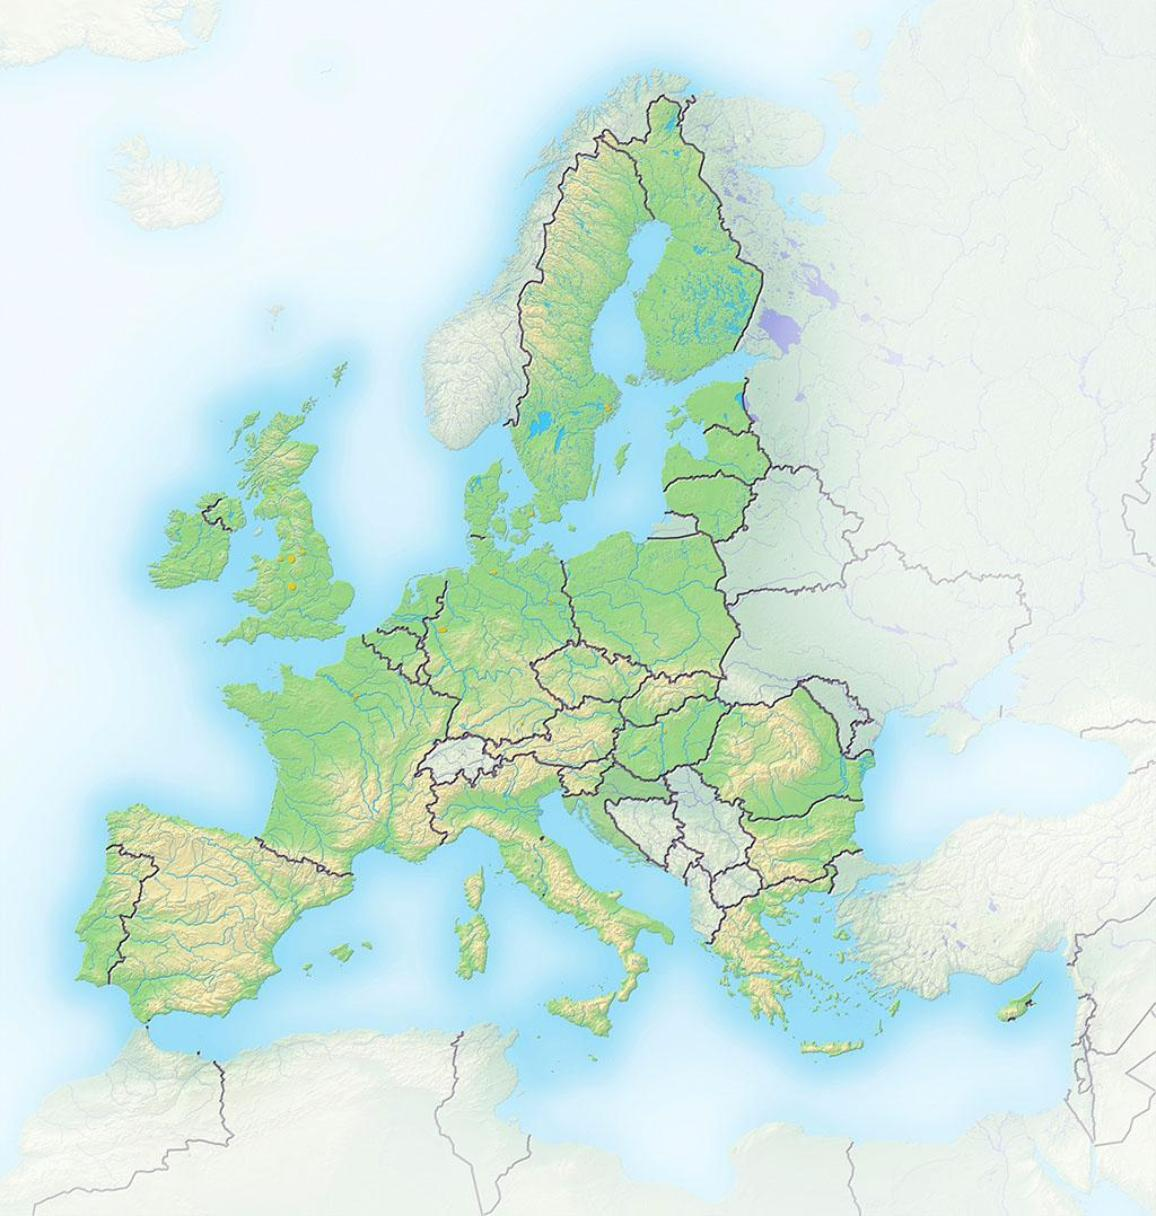 EU enlargement relief map